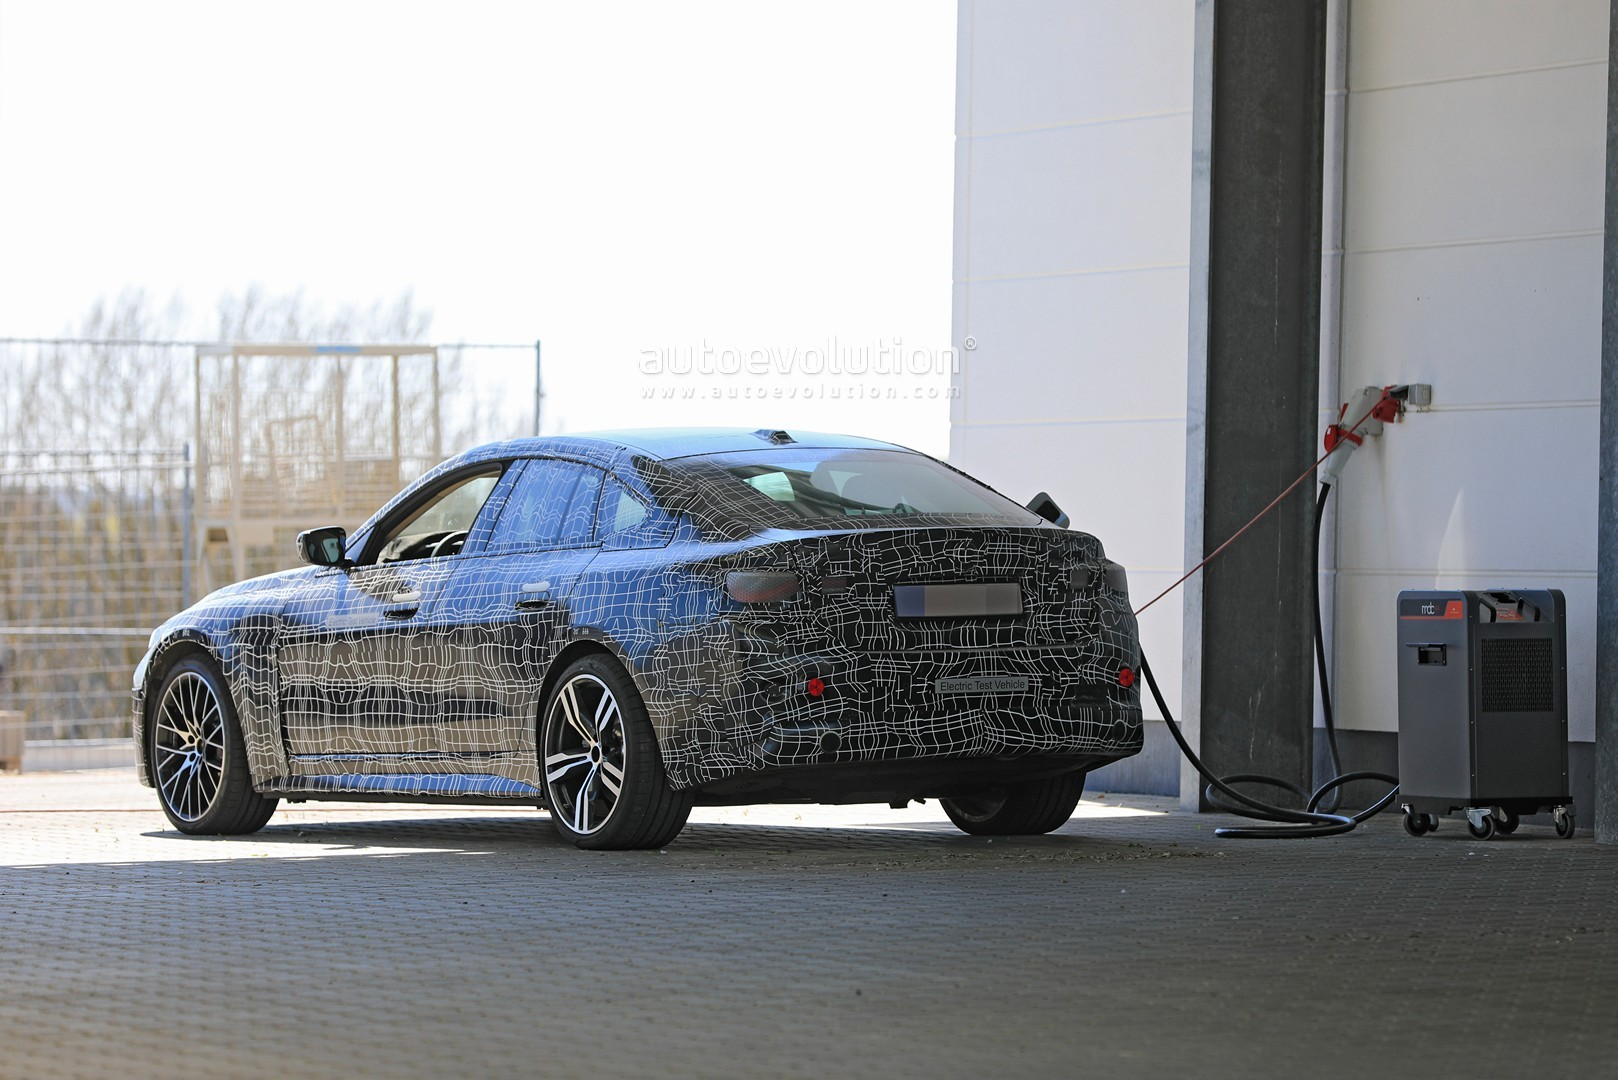 bmw-i4-spied-with-4-series-styling-might-have-dual-motor-setup_1